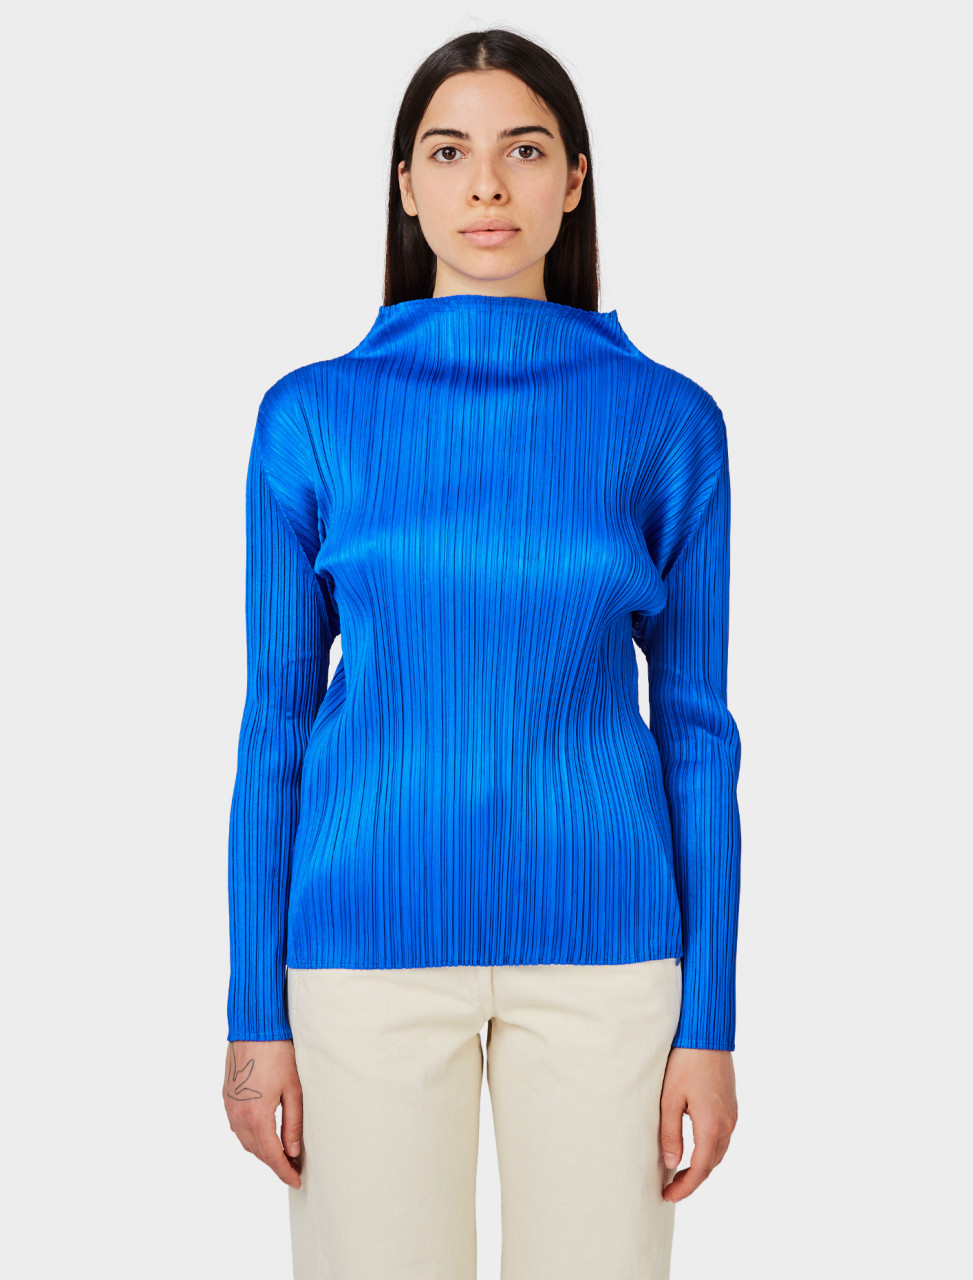 Pleated Shirt in Blue